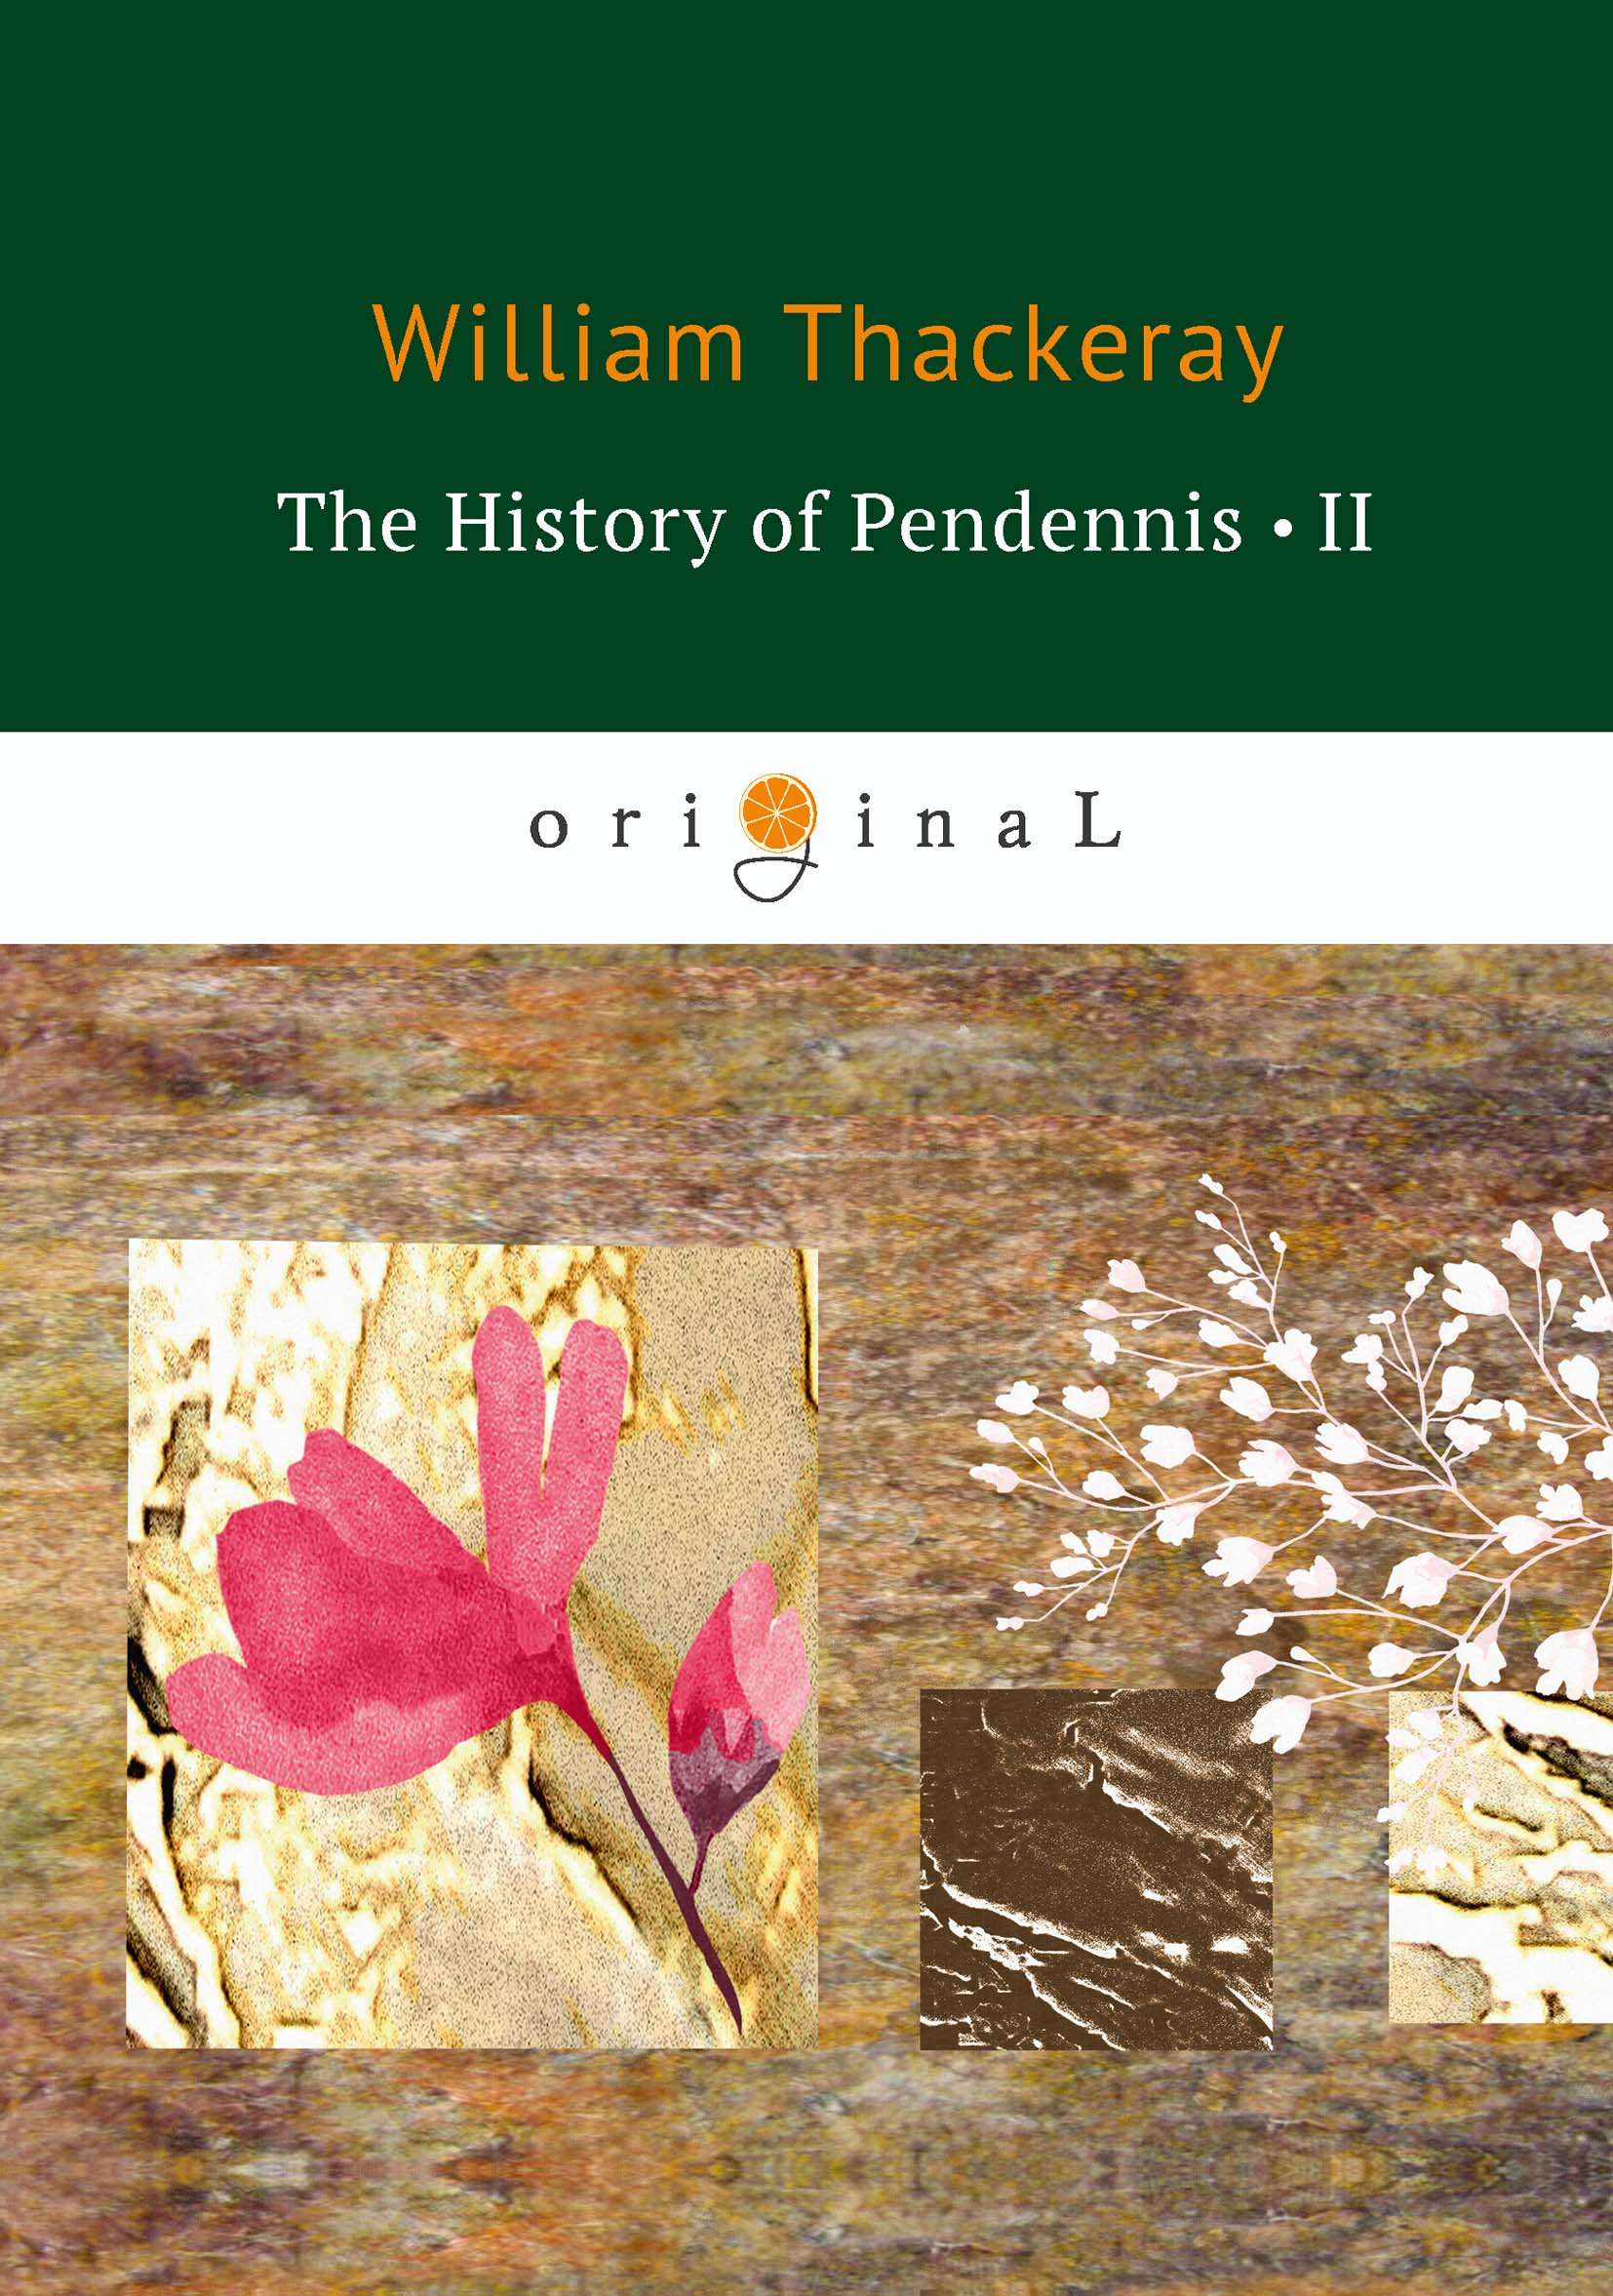 W. Thackeray The History of Pendennis II thackeray william makepeace the history of pendennis 1